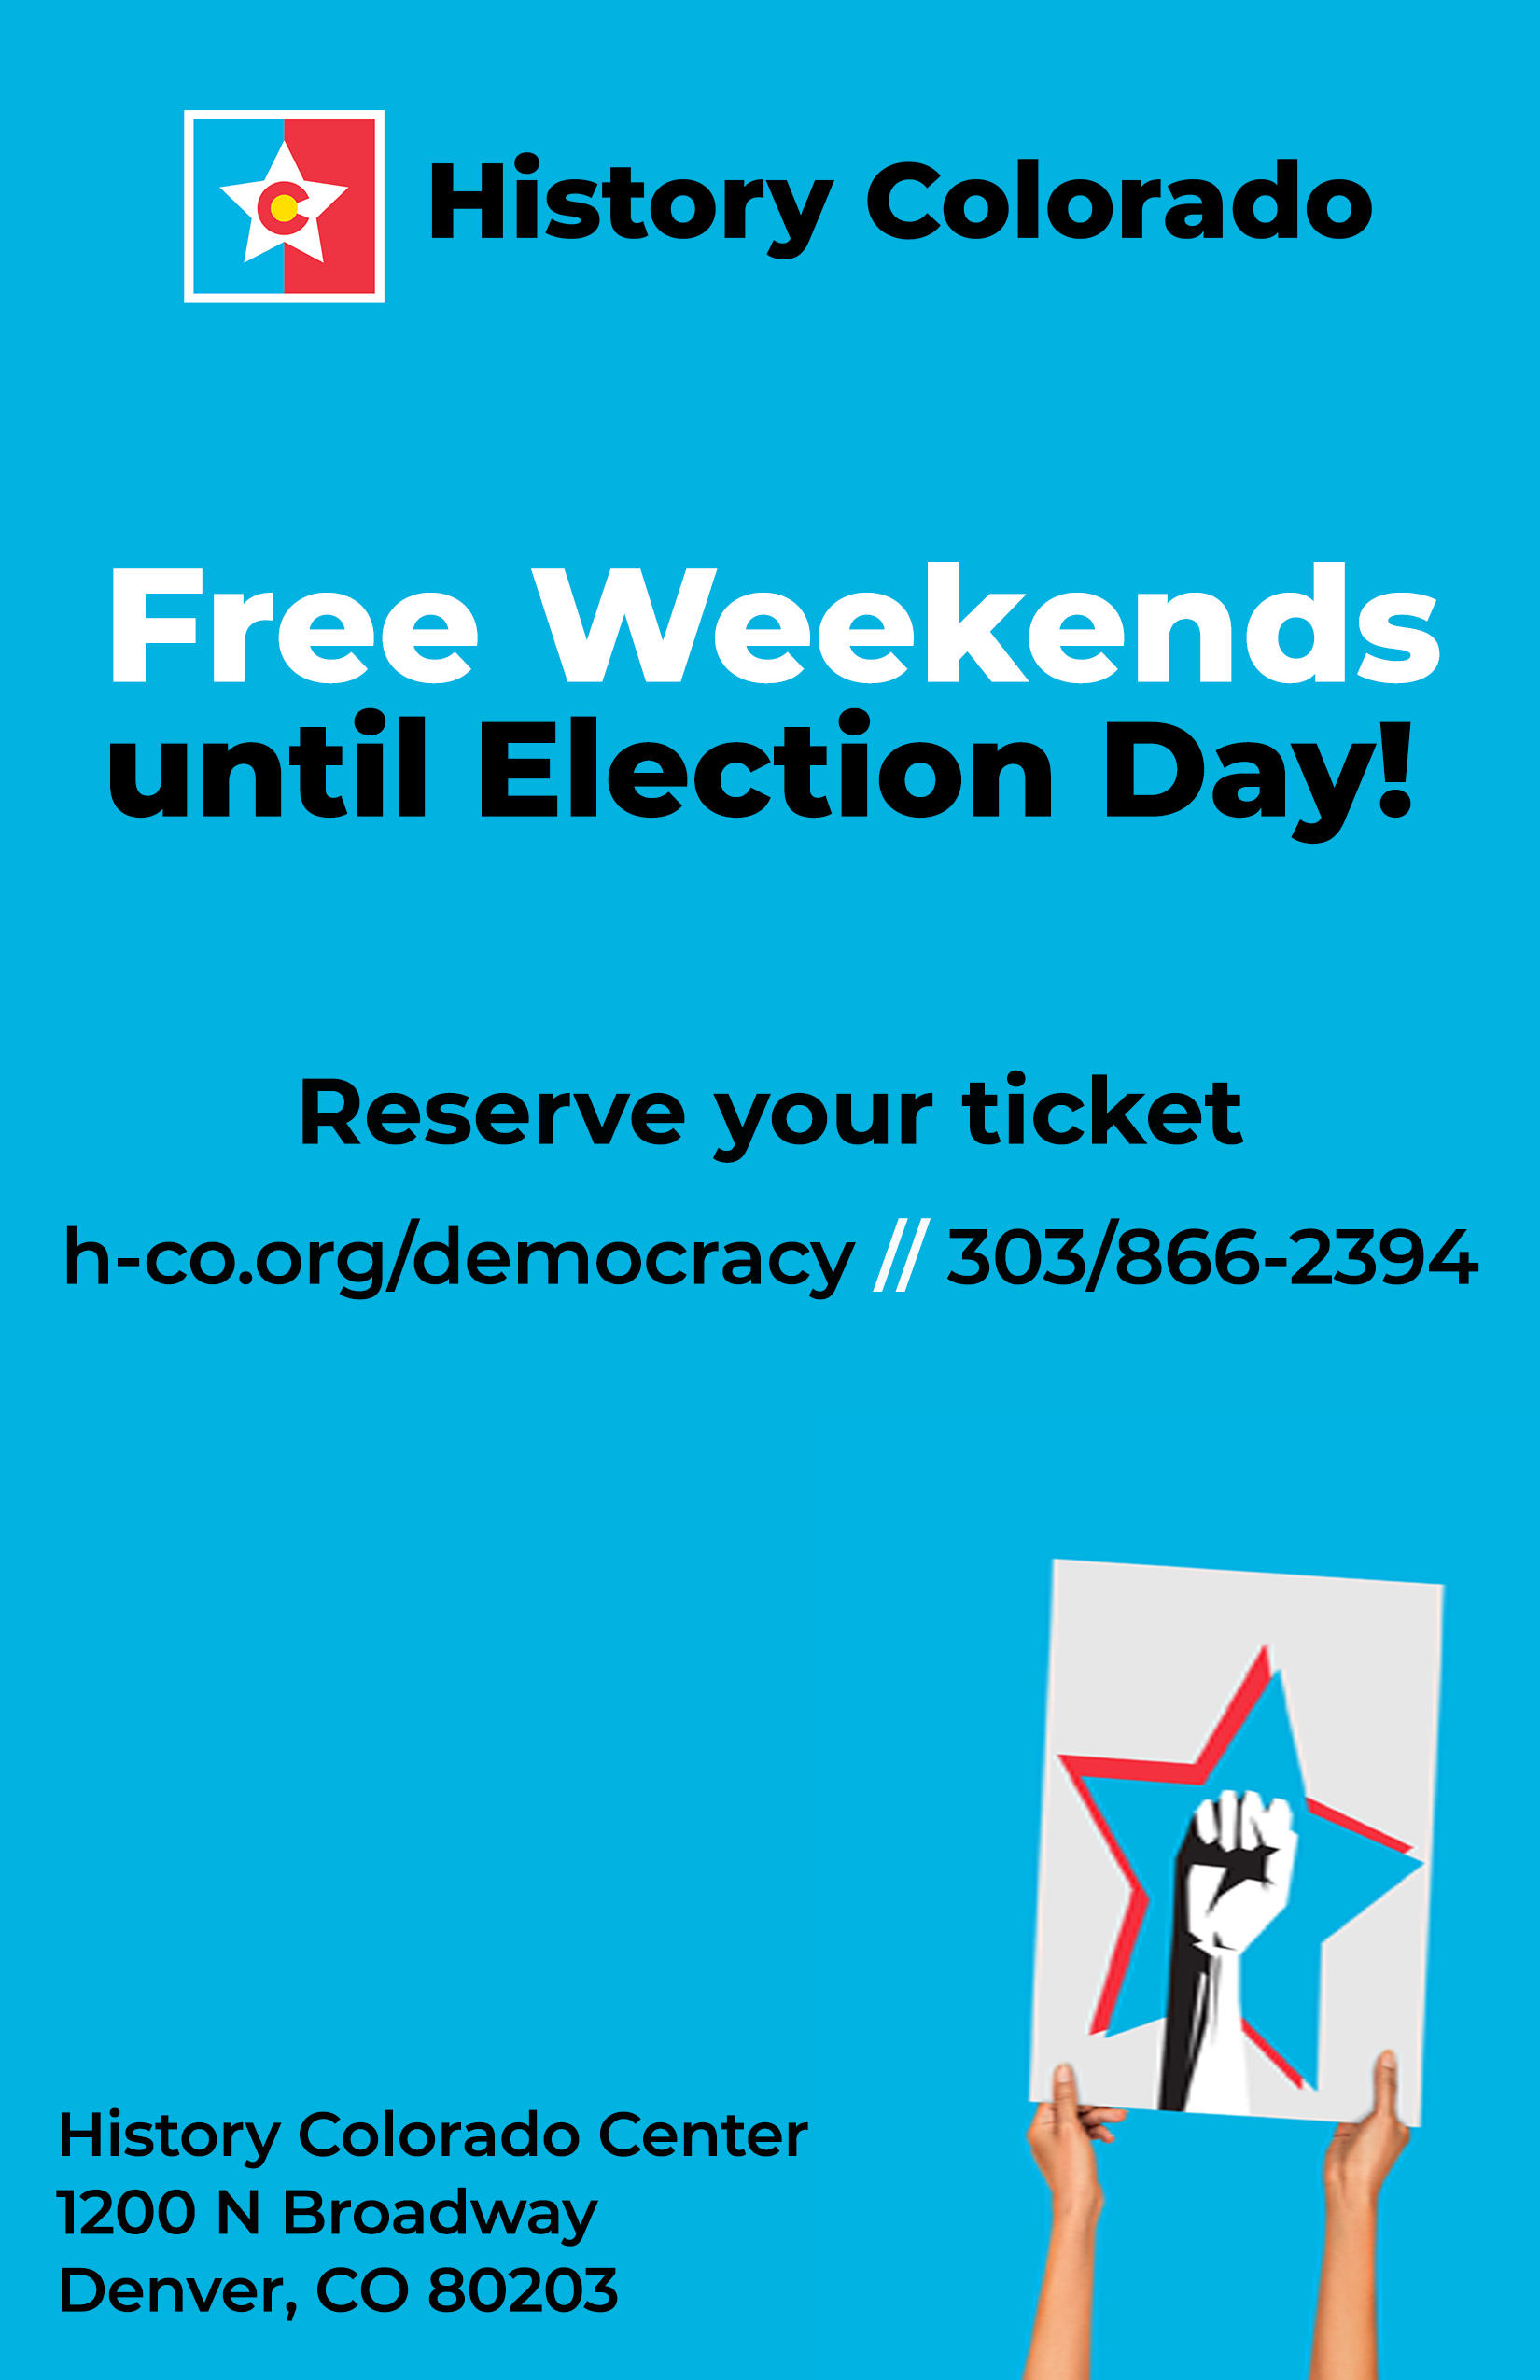 Free Weekends until Election Day! Reserve your ticket h-co.org/democracy // 303-866-2394. History Colorado 1200 N Broadway Denver CO 80203.   Image Description: Blue Background with two hands holding up a white sign of a fist with red and blue stars behind it.